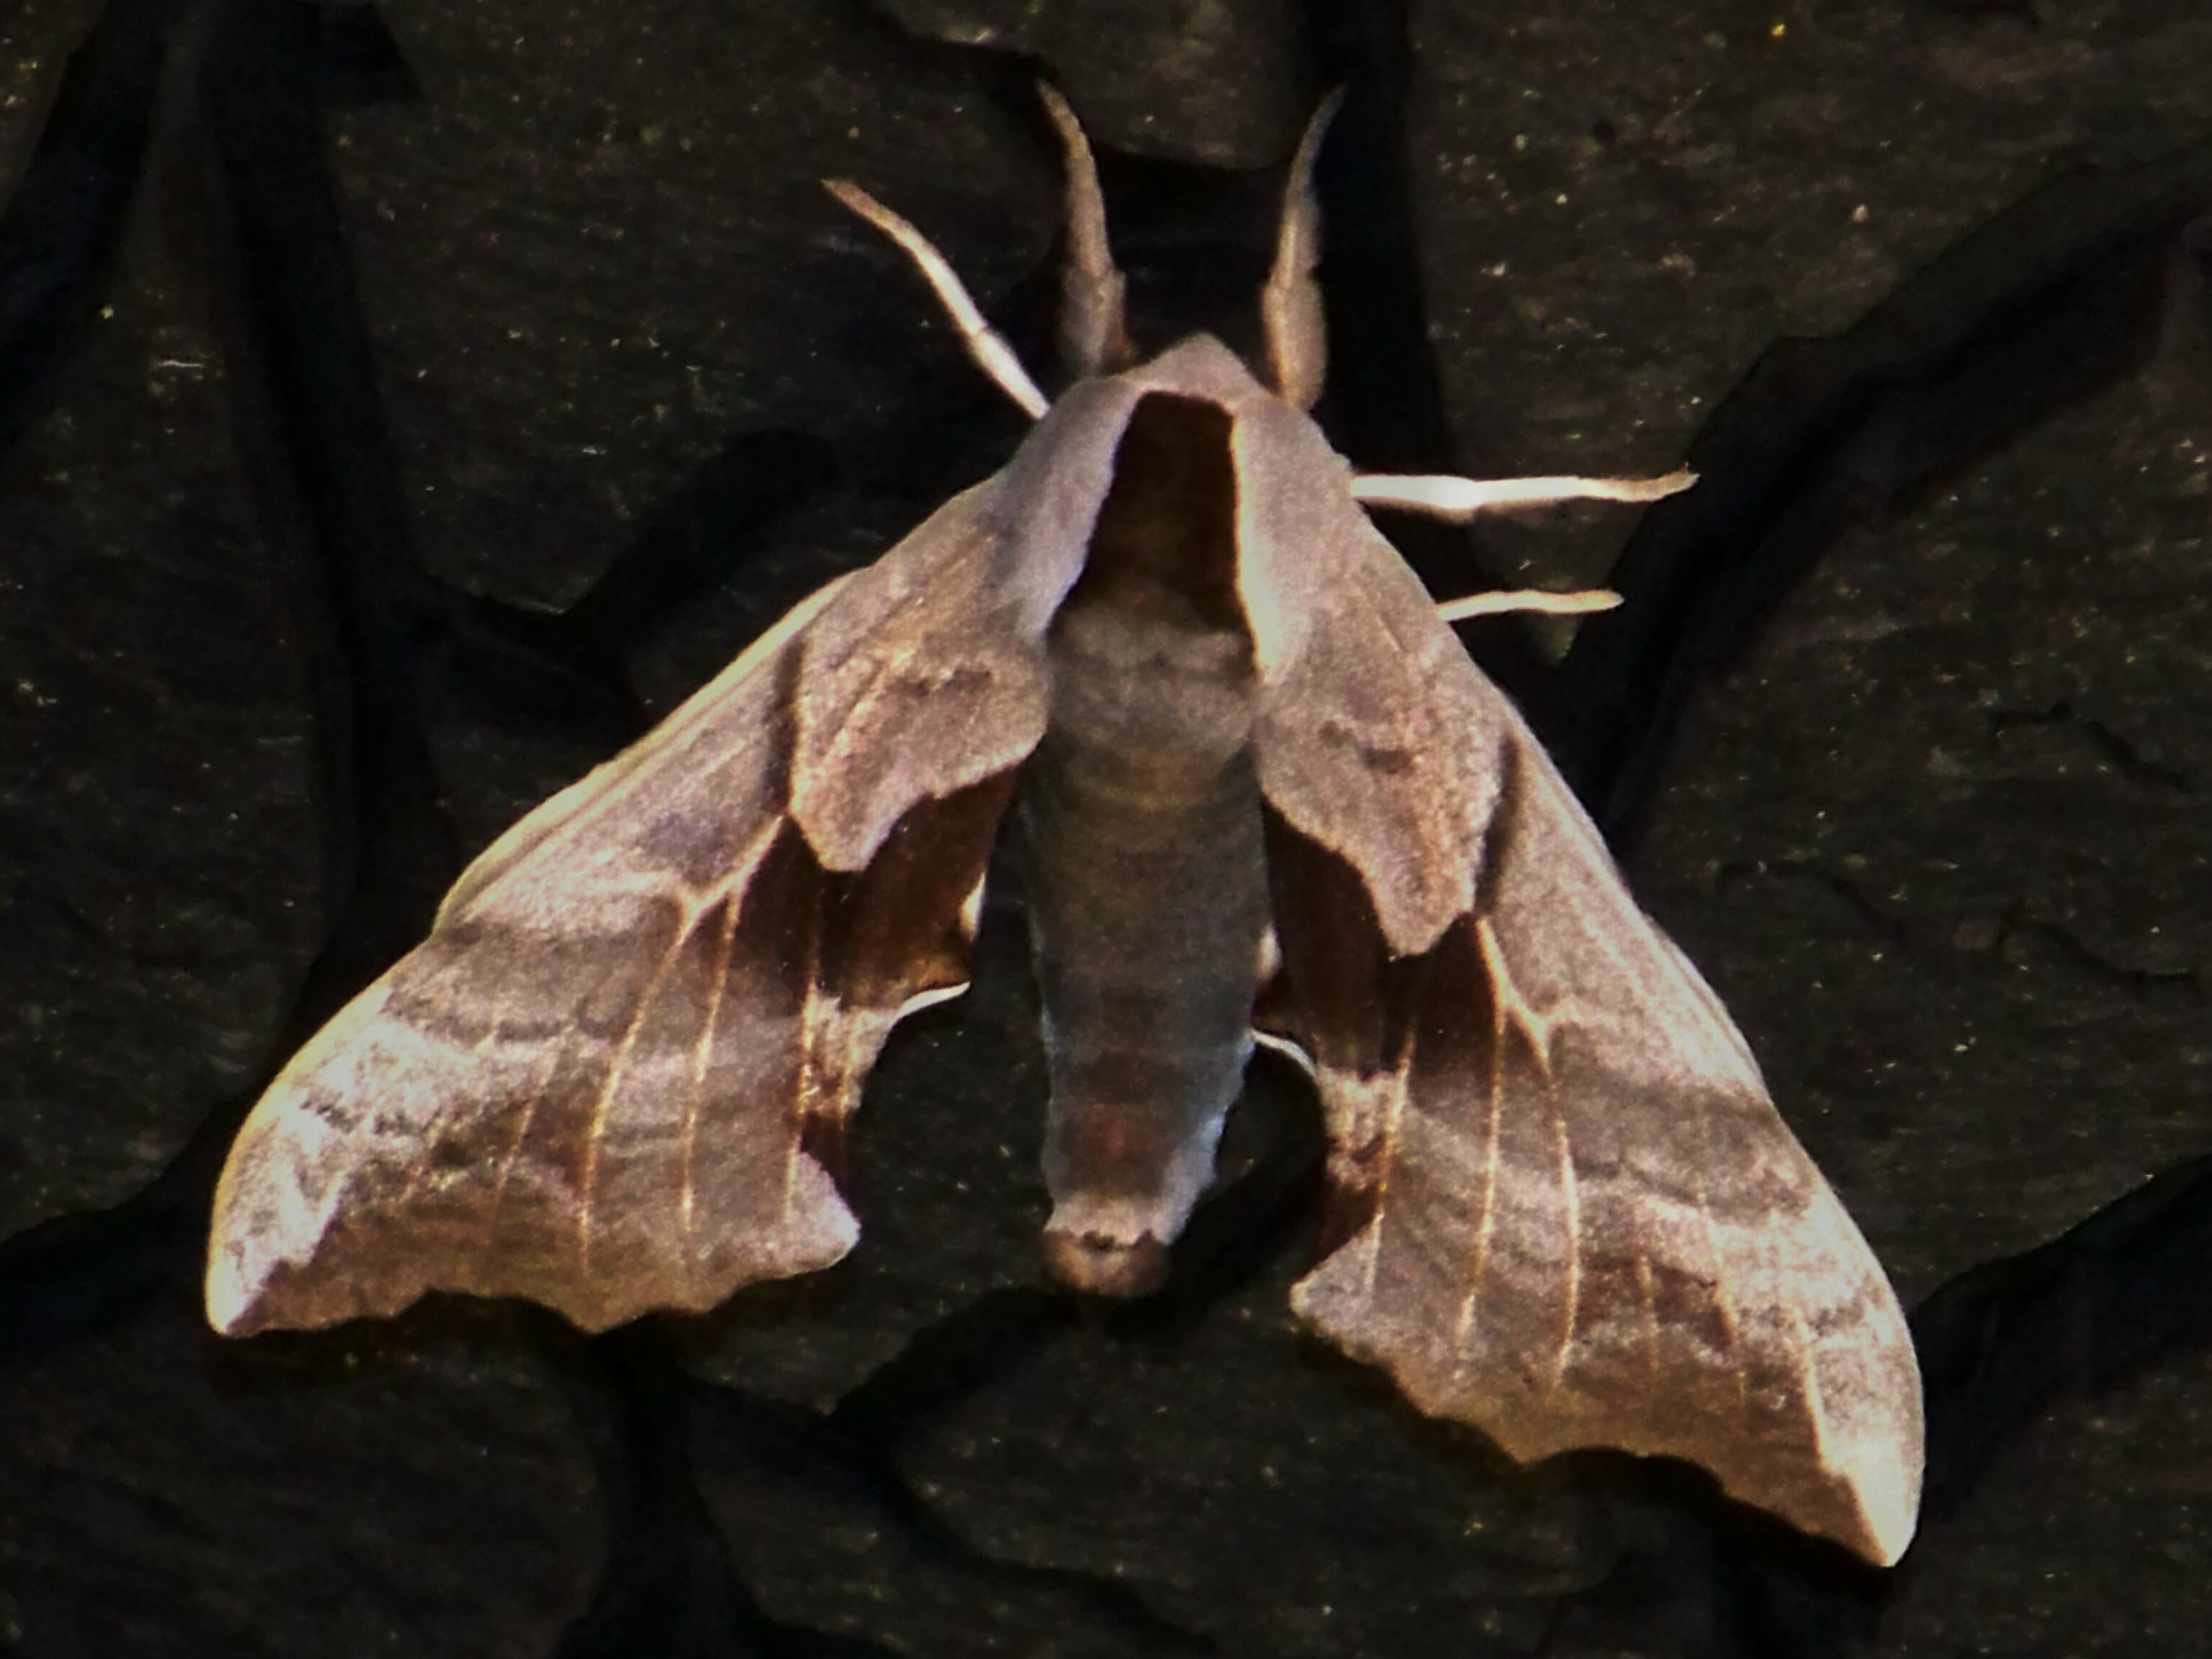 Unknown Moth Image 2